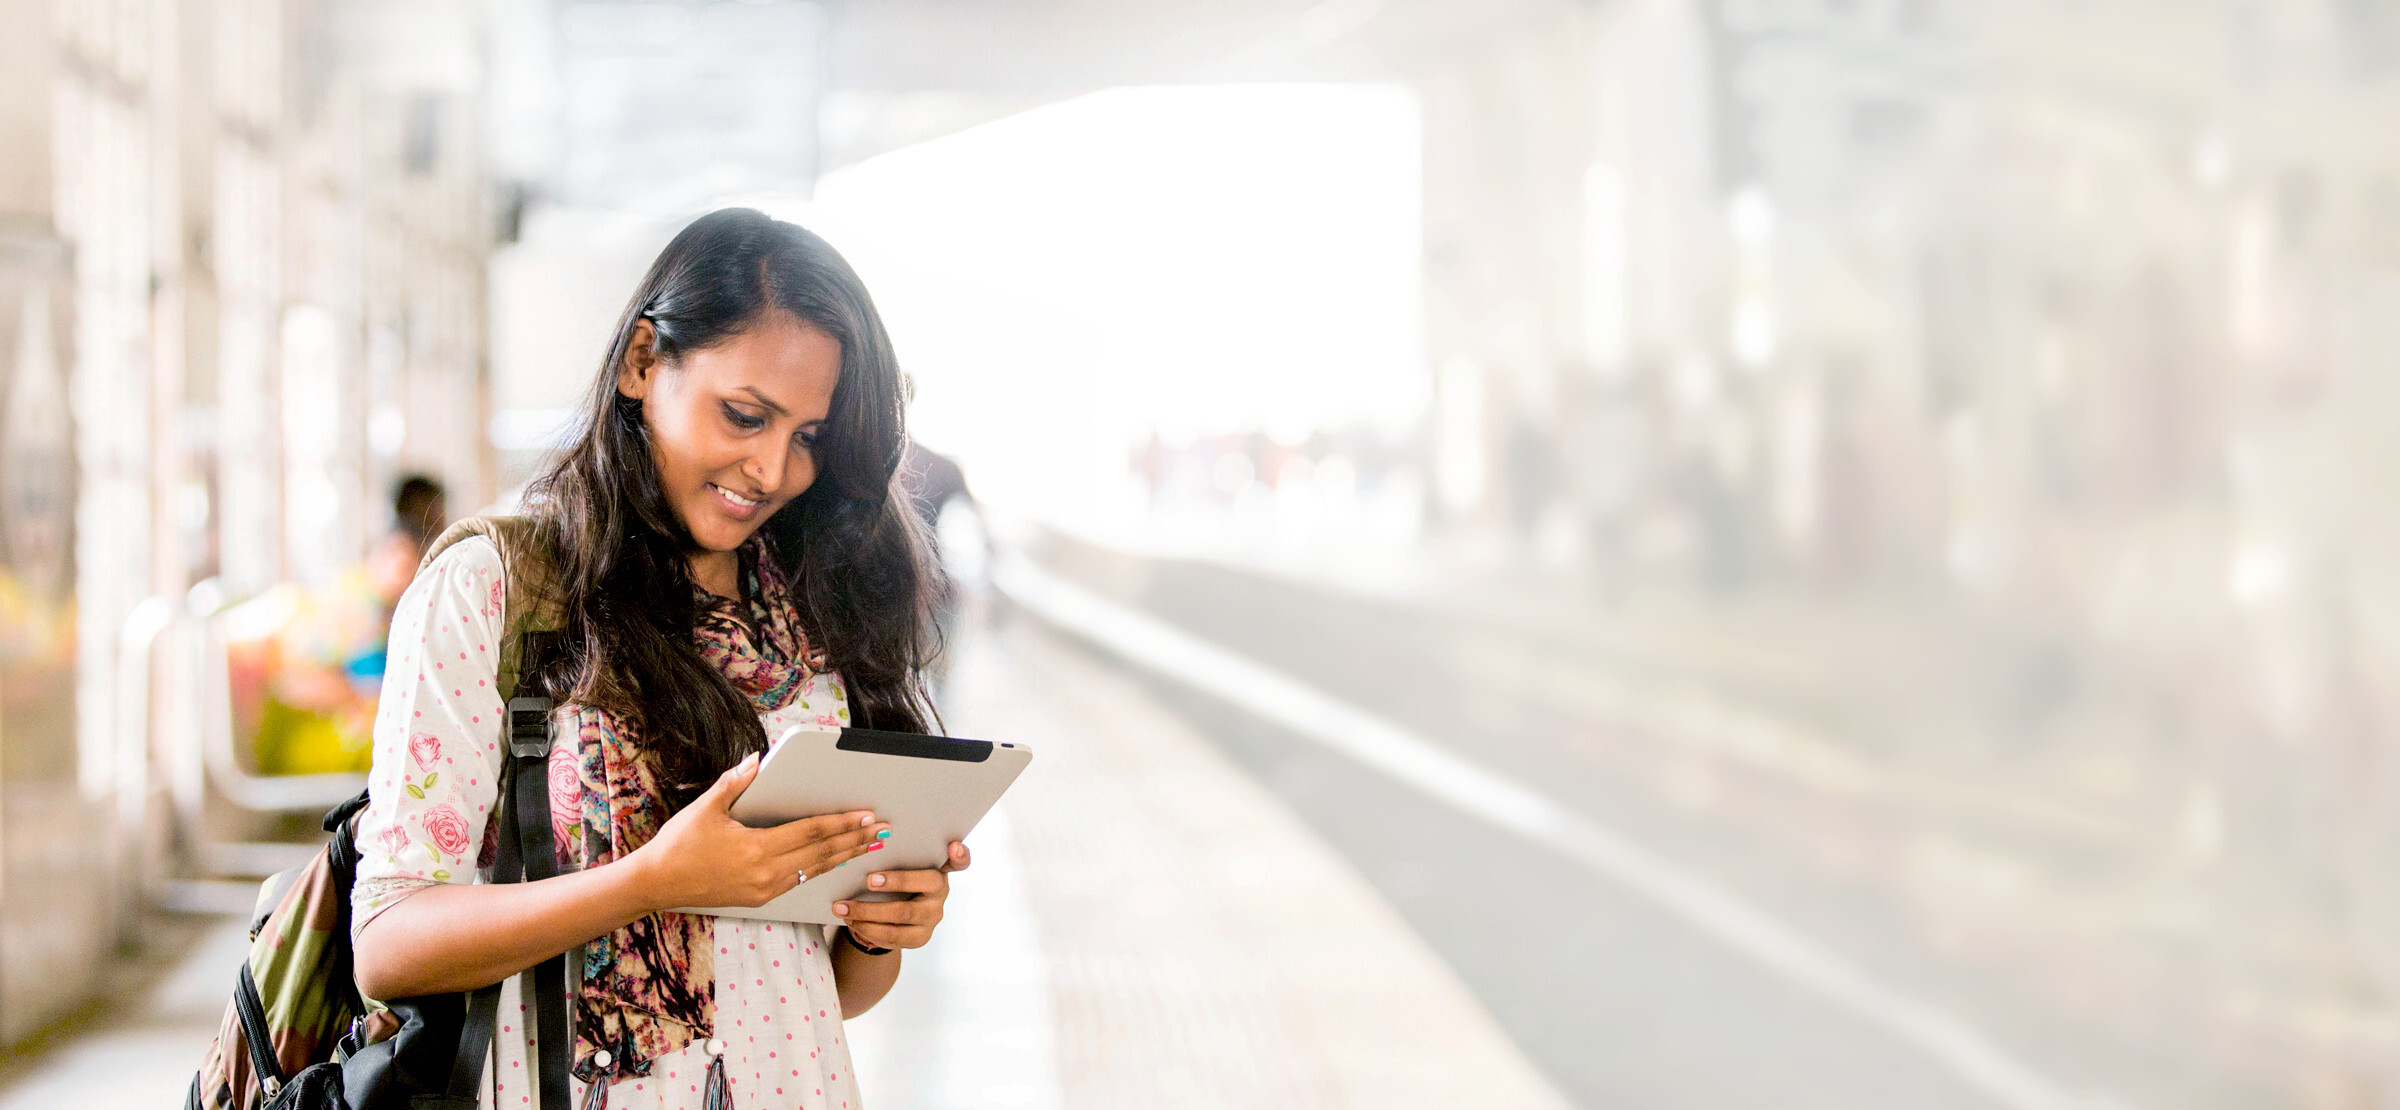 Google Stations provides Wi-Fi hotspots at 50 train stations